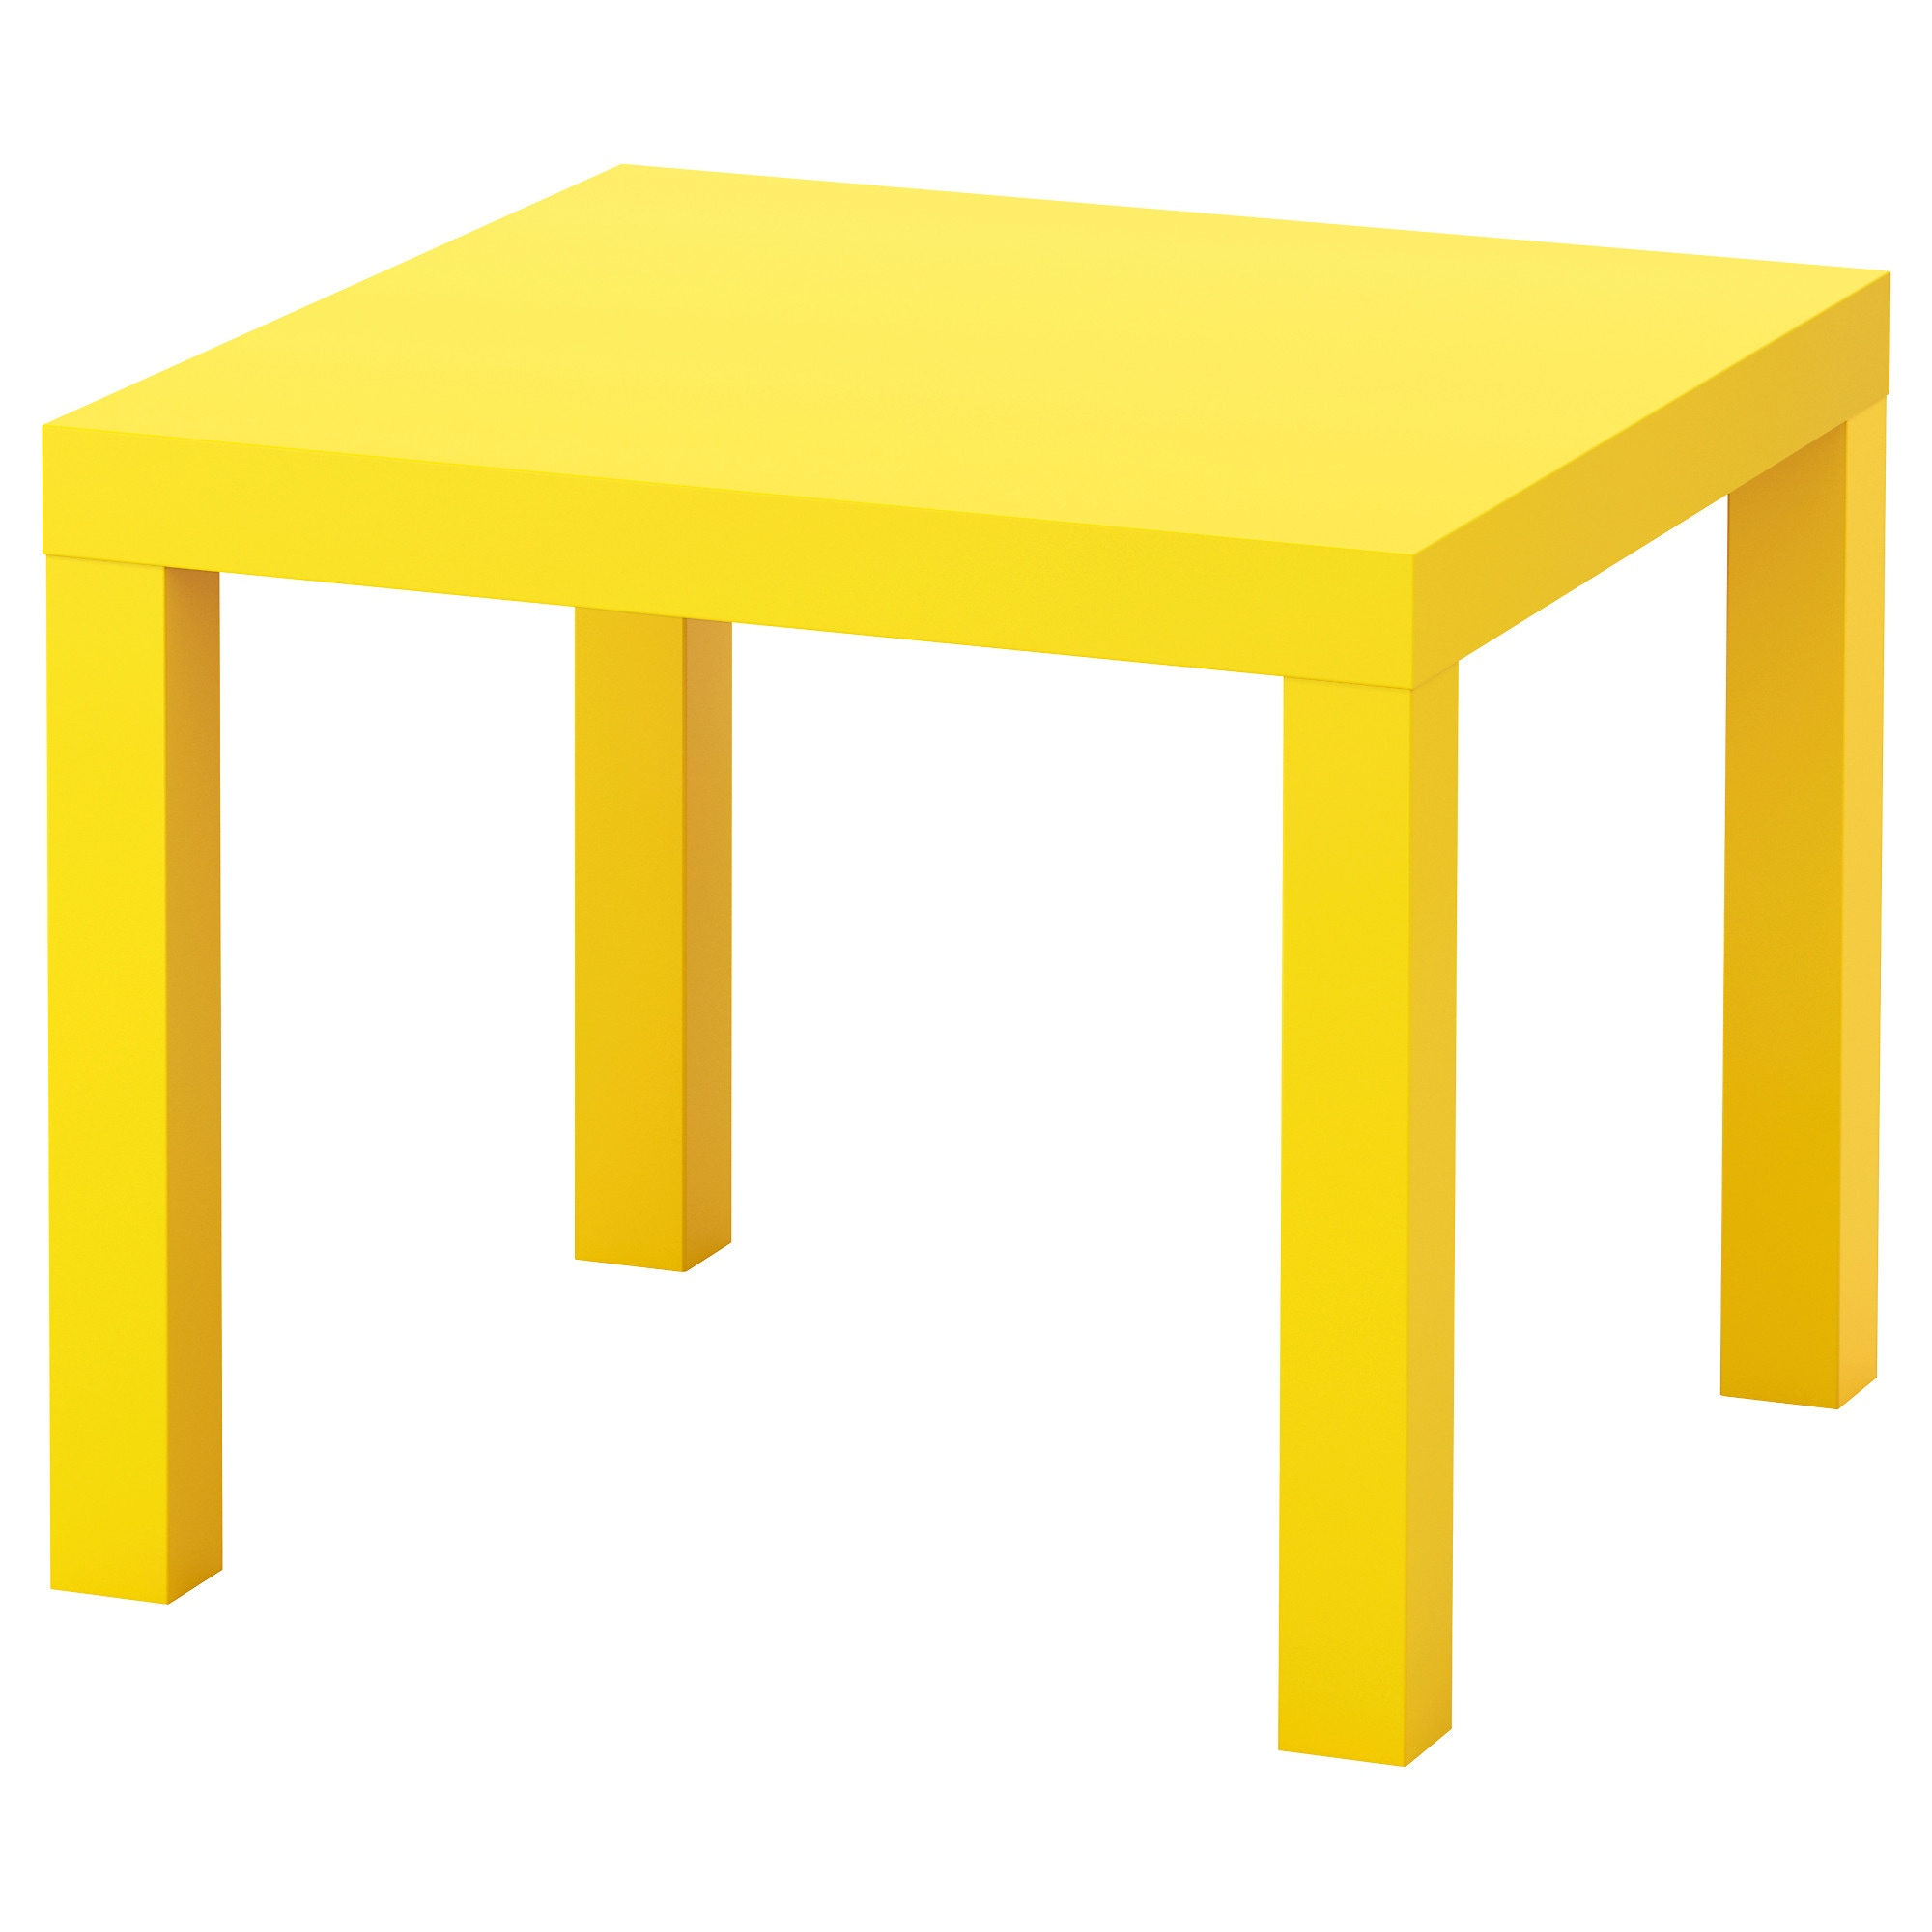 "LACK Side table yellow 21 5 8x21 5 8 "" IKEA"